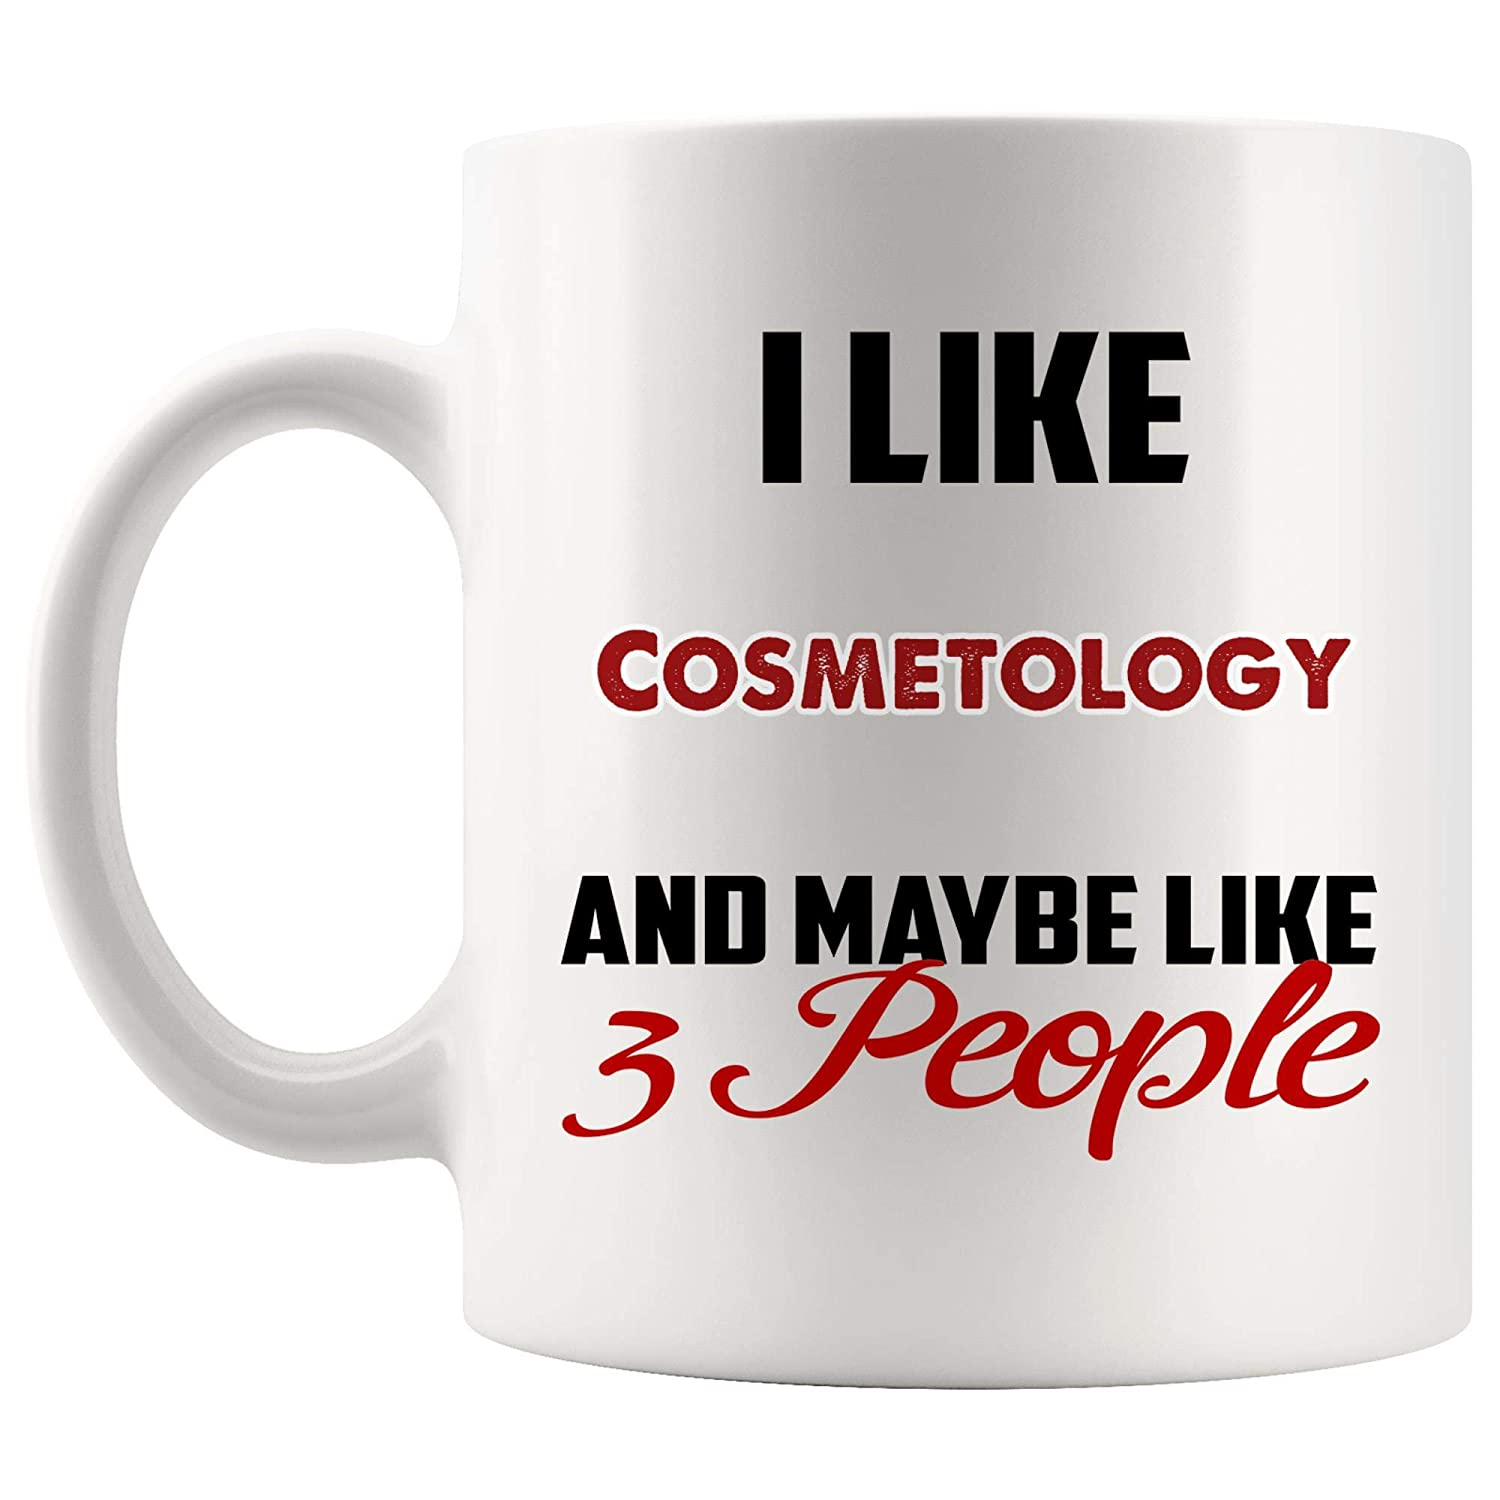 I Like Cosmetology Mug Coffee Cup Tea Mugs Gift -And Maybe Like 3 People Study Student Stylist Artistic Makeup Artist Nail Technician Hairdresser